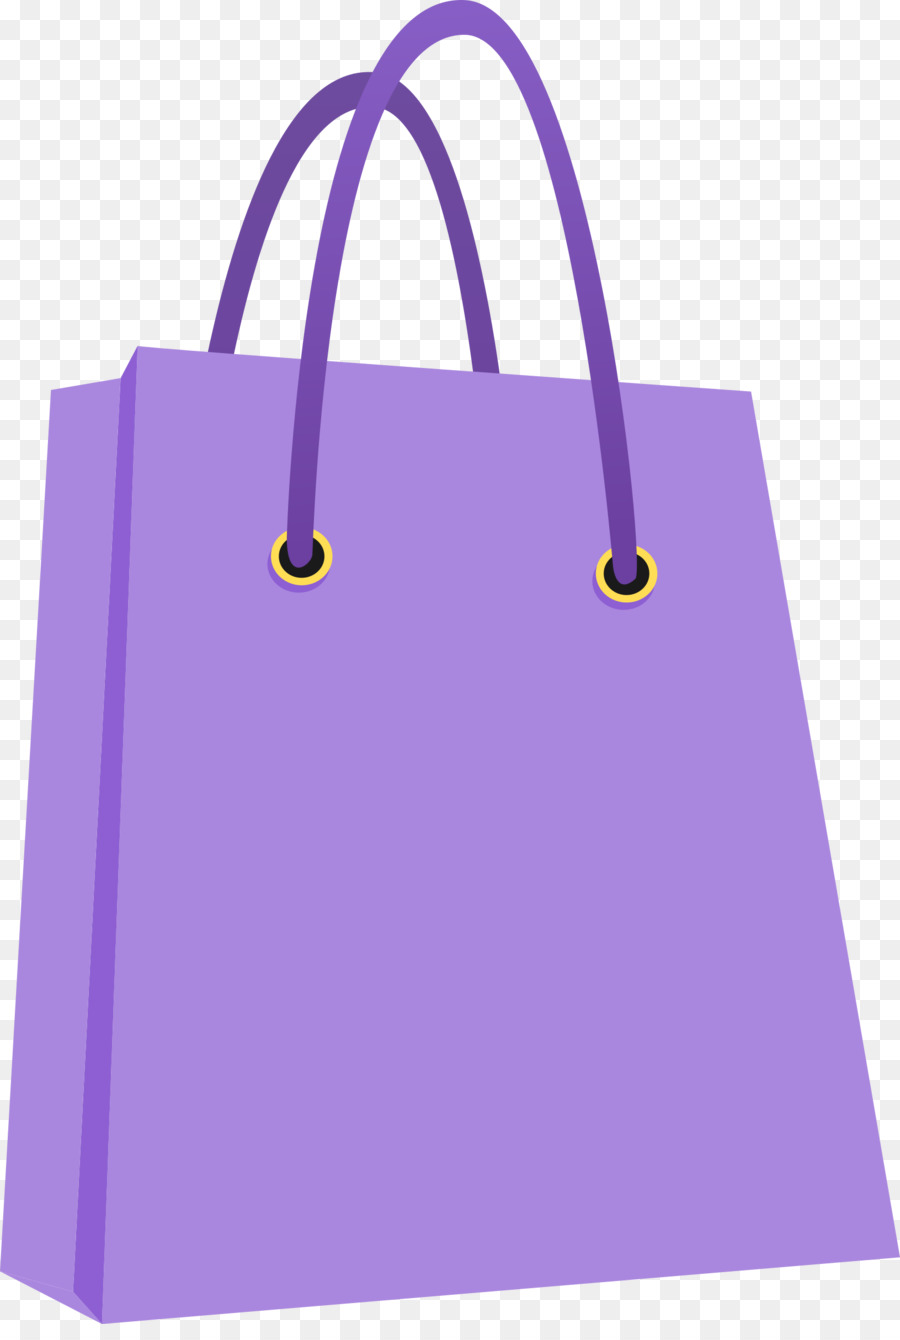 Shopping bags clipart png transparent stock Shopping Bag png download - 1631*2400 - Free Transparent ... png transparent stock